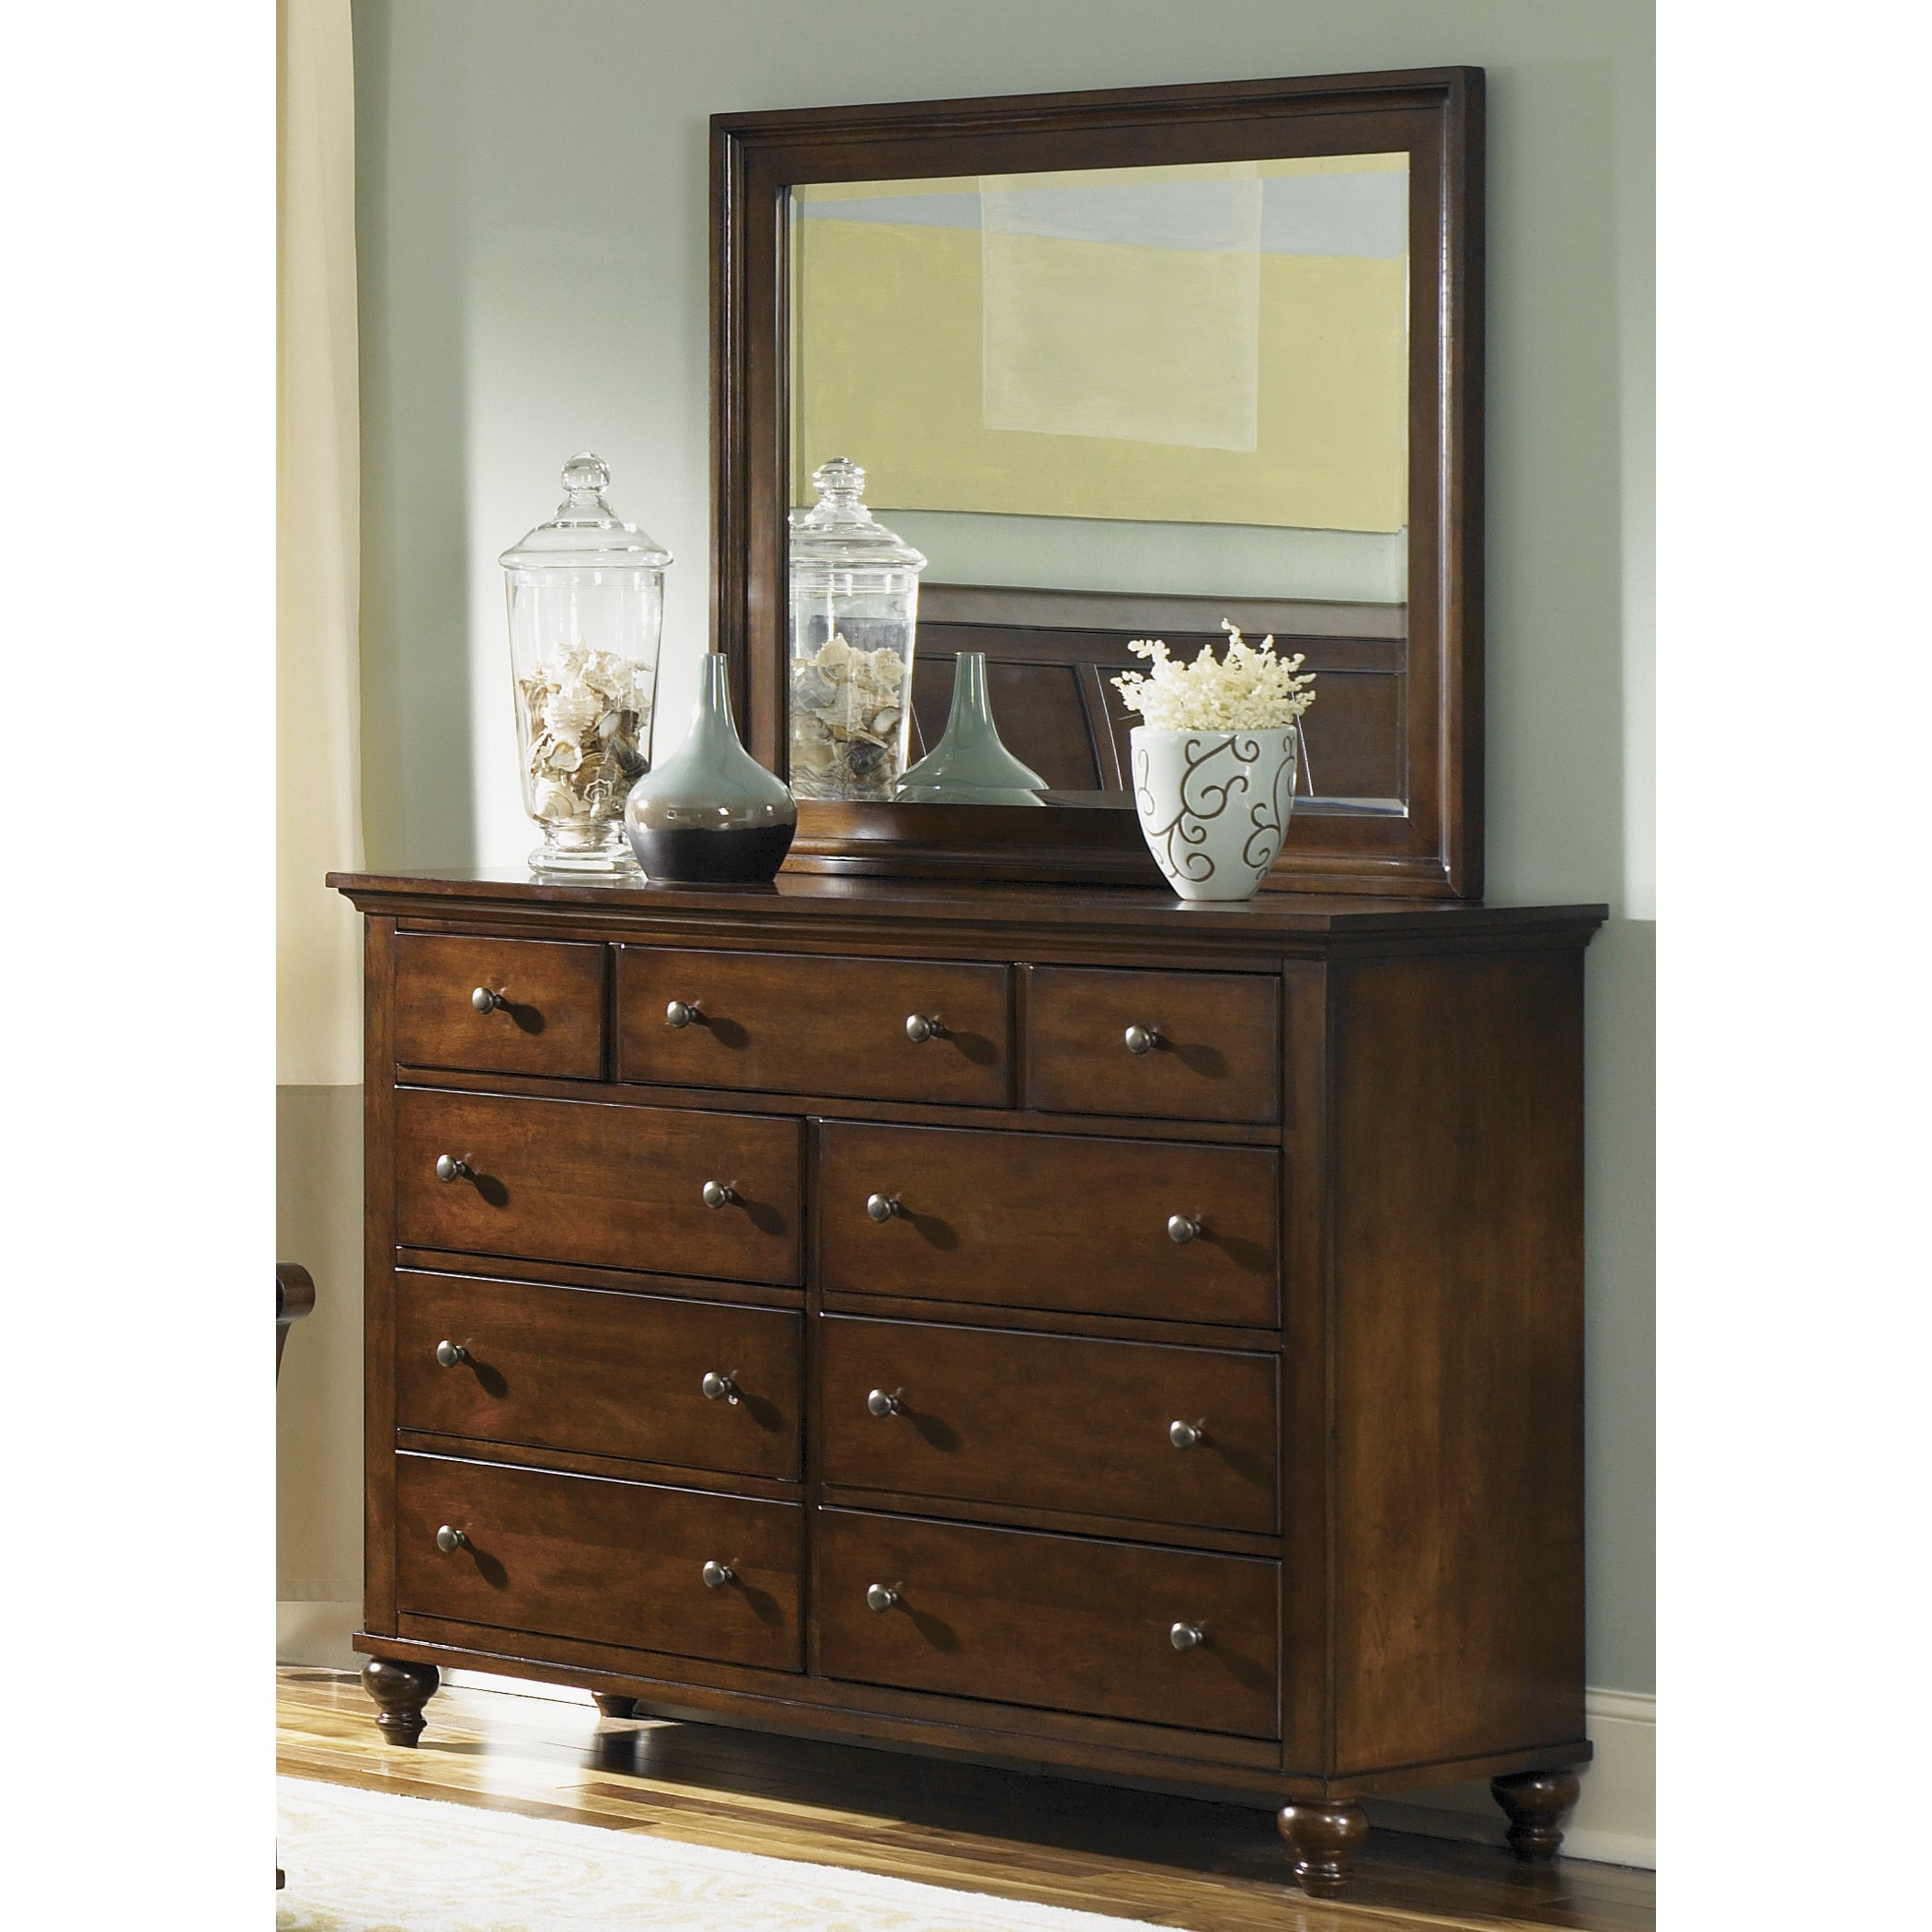 Buy Mirrored Dressers Chests Online At Overstock Our Best